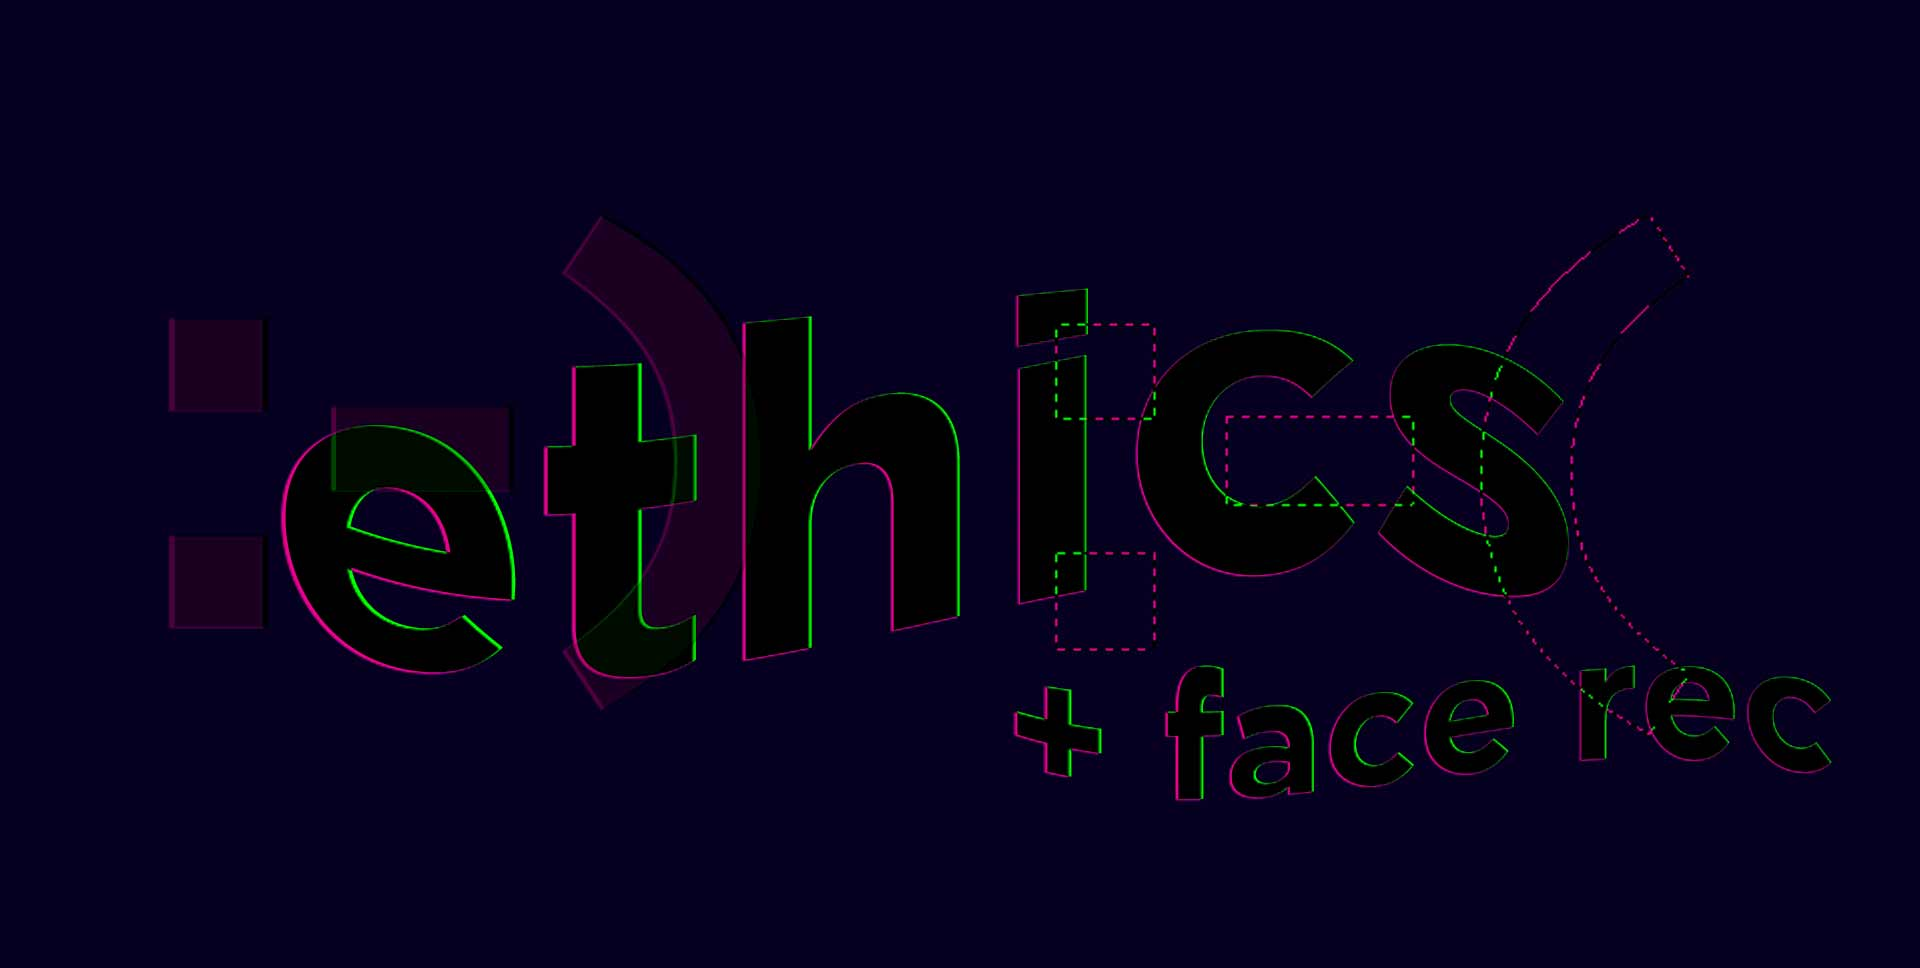 Illustration of the word 'ethics' and 'face recognition'